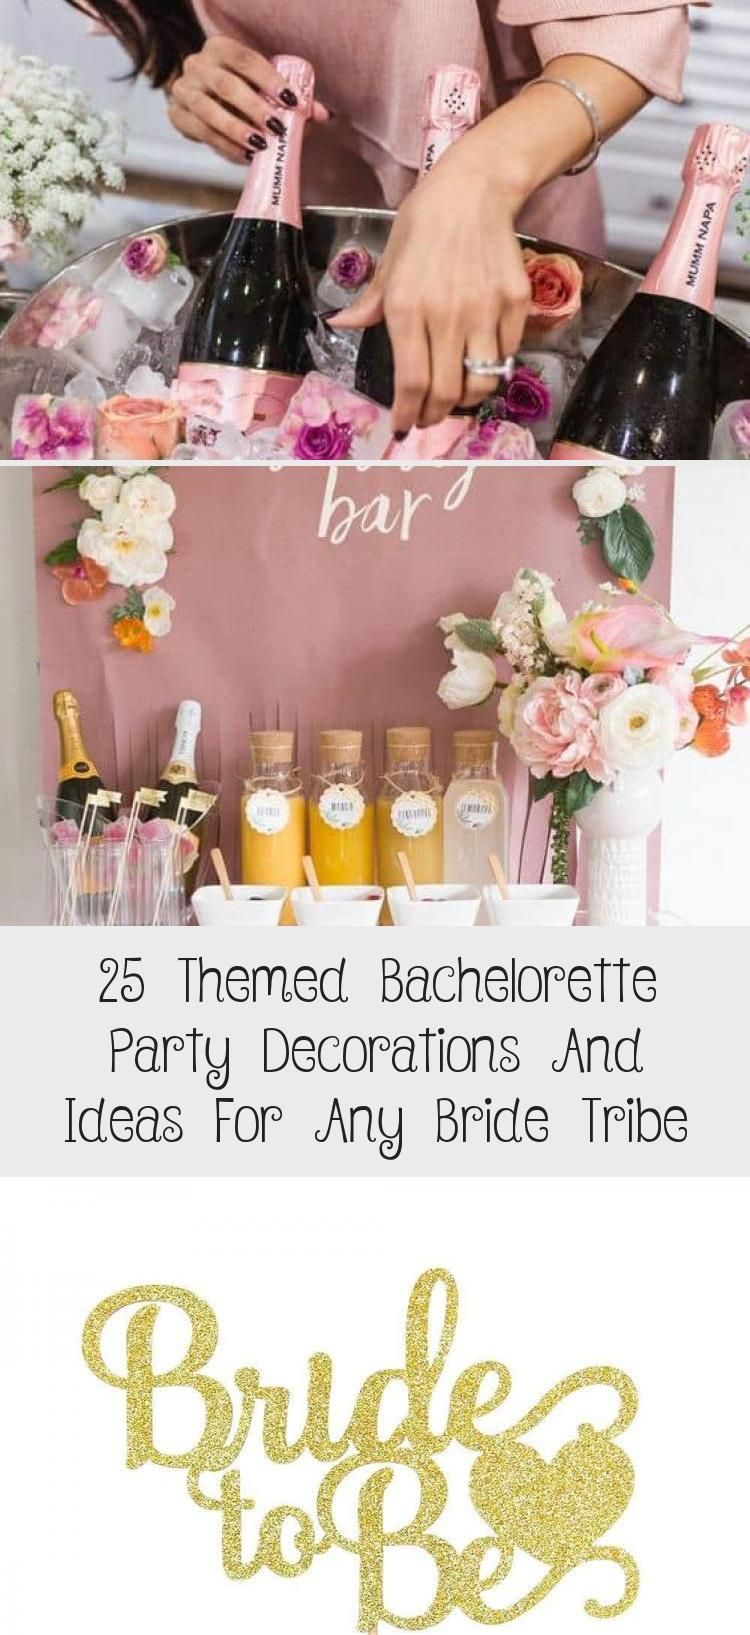 25 Themed Bachelorette Party Decorations And Ideas For Any Bride Tribe  Pinokyo 25 Themed Bachelorette Party Decorations And Ideas For Any Bride Tribe  Pinokyo